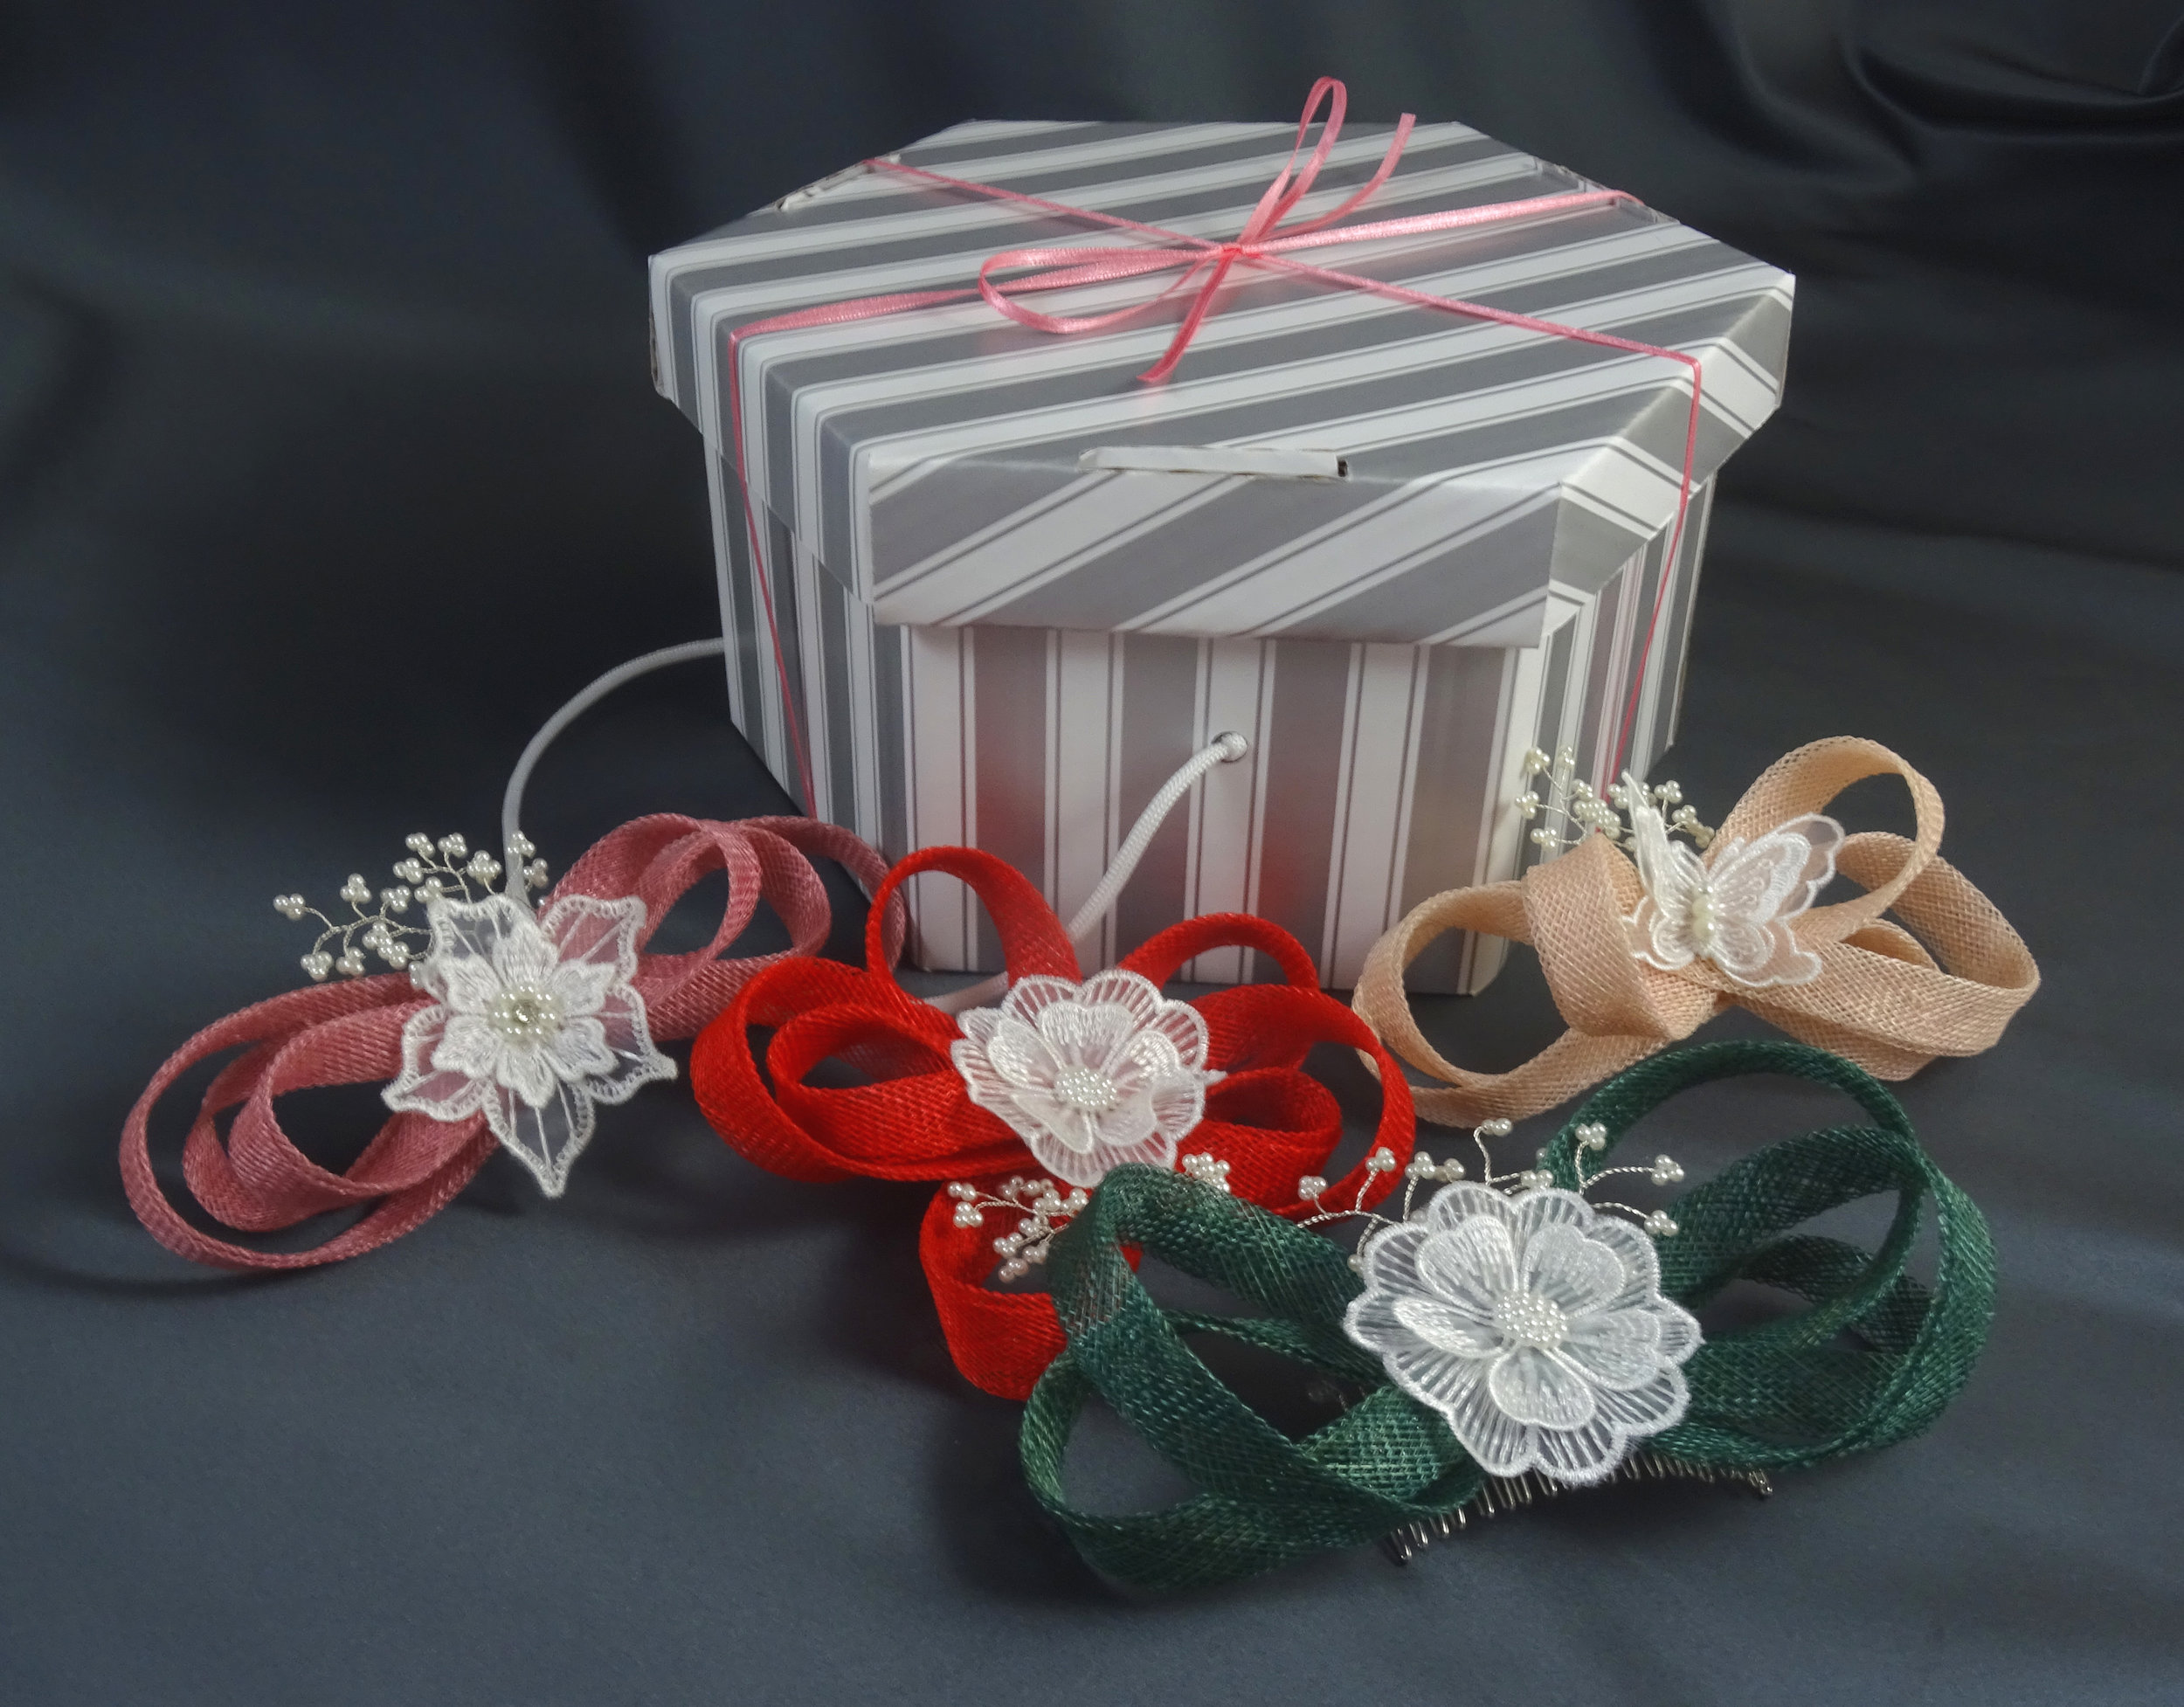 Kits available in the online shop here:  http://www.warrillowstudio.com/shop/1-fascinator-comb-kit